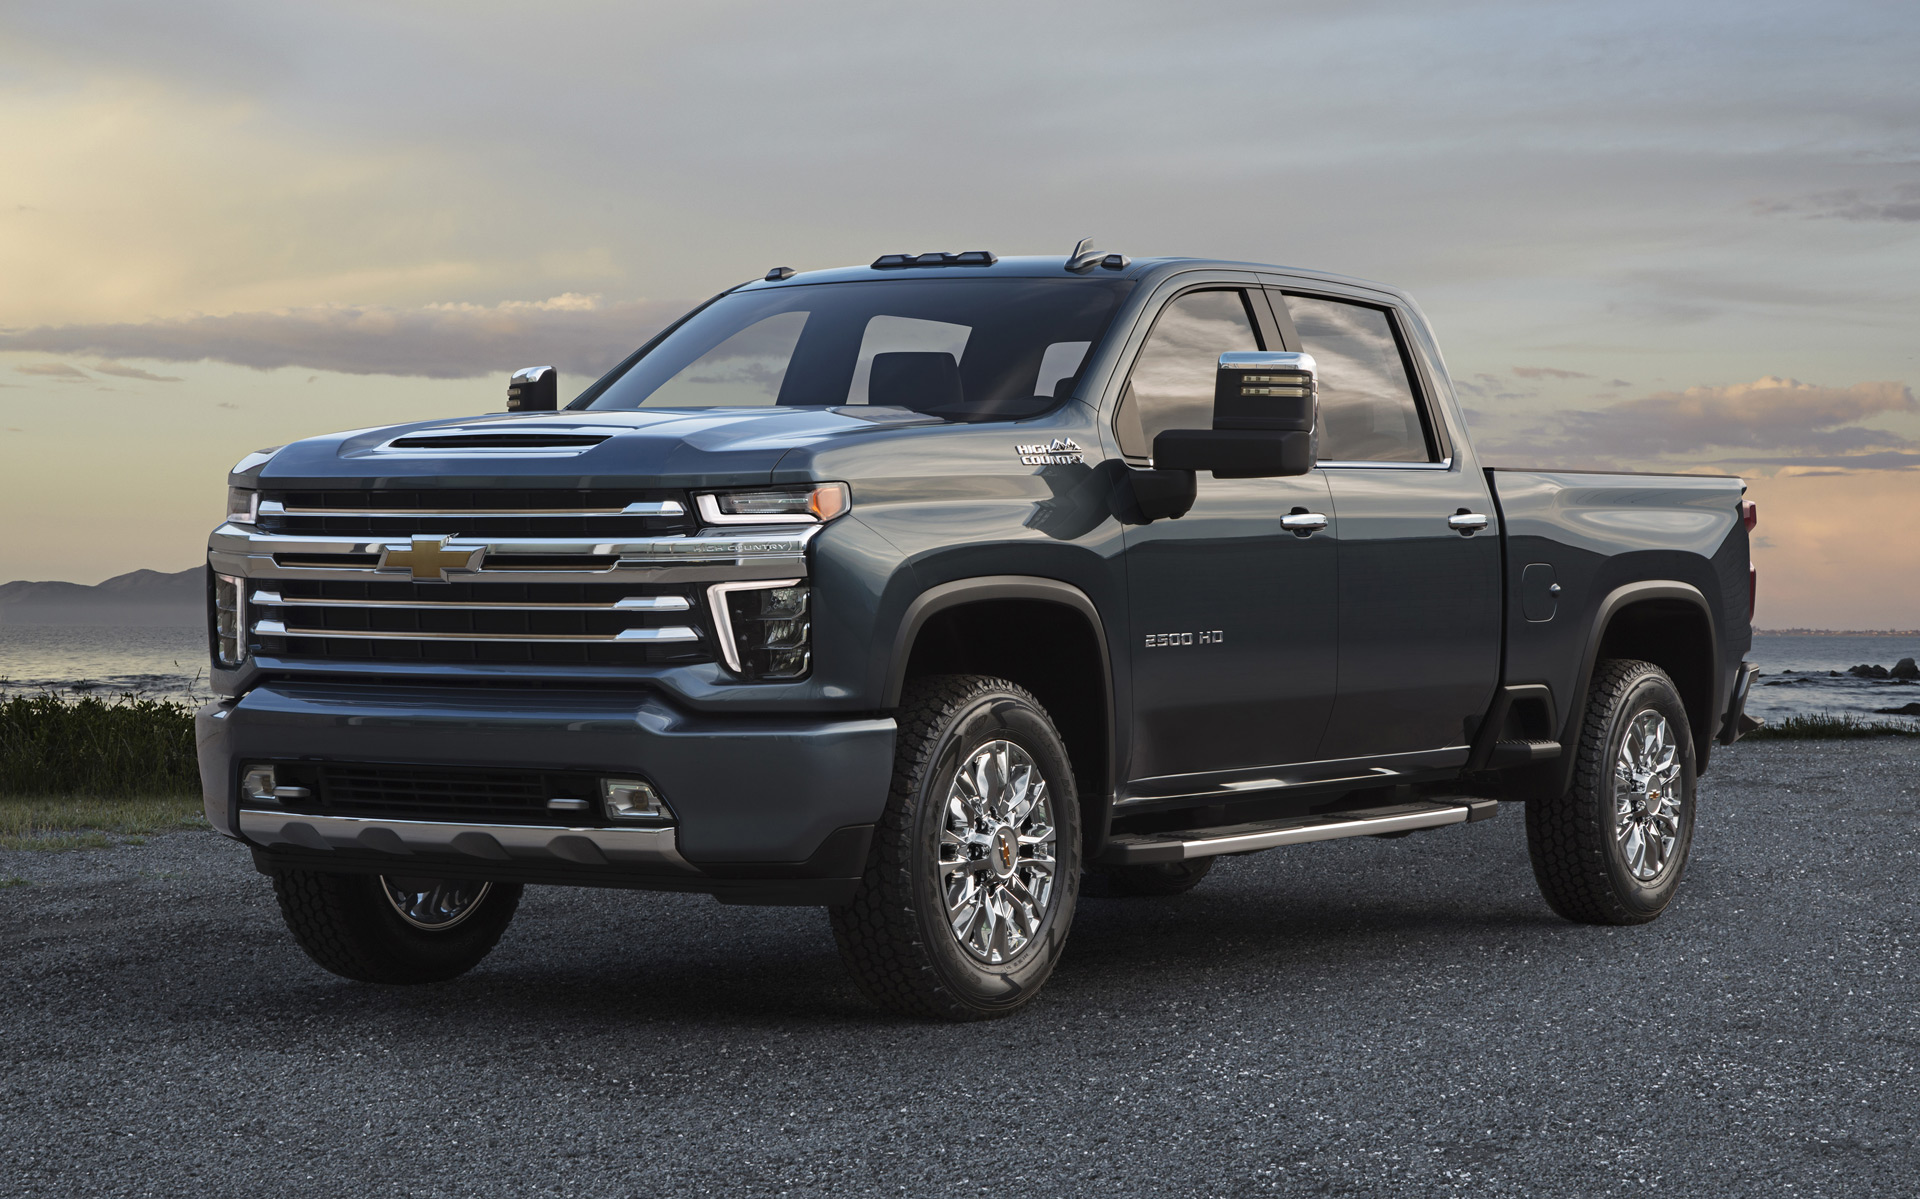 42 All New 2020 Chevrolet Silverado Rumors